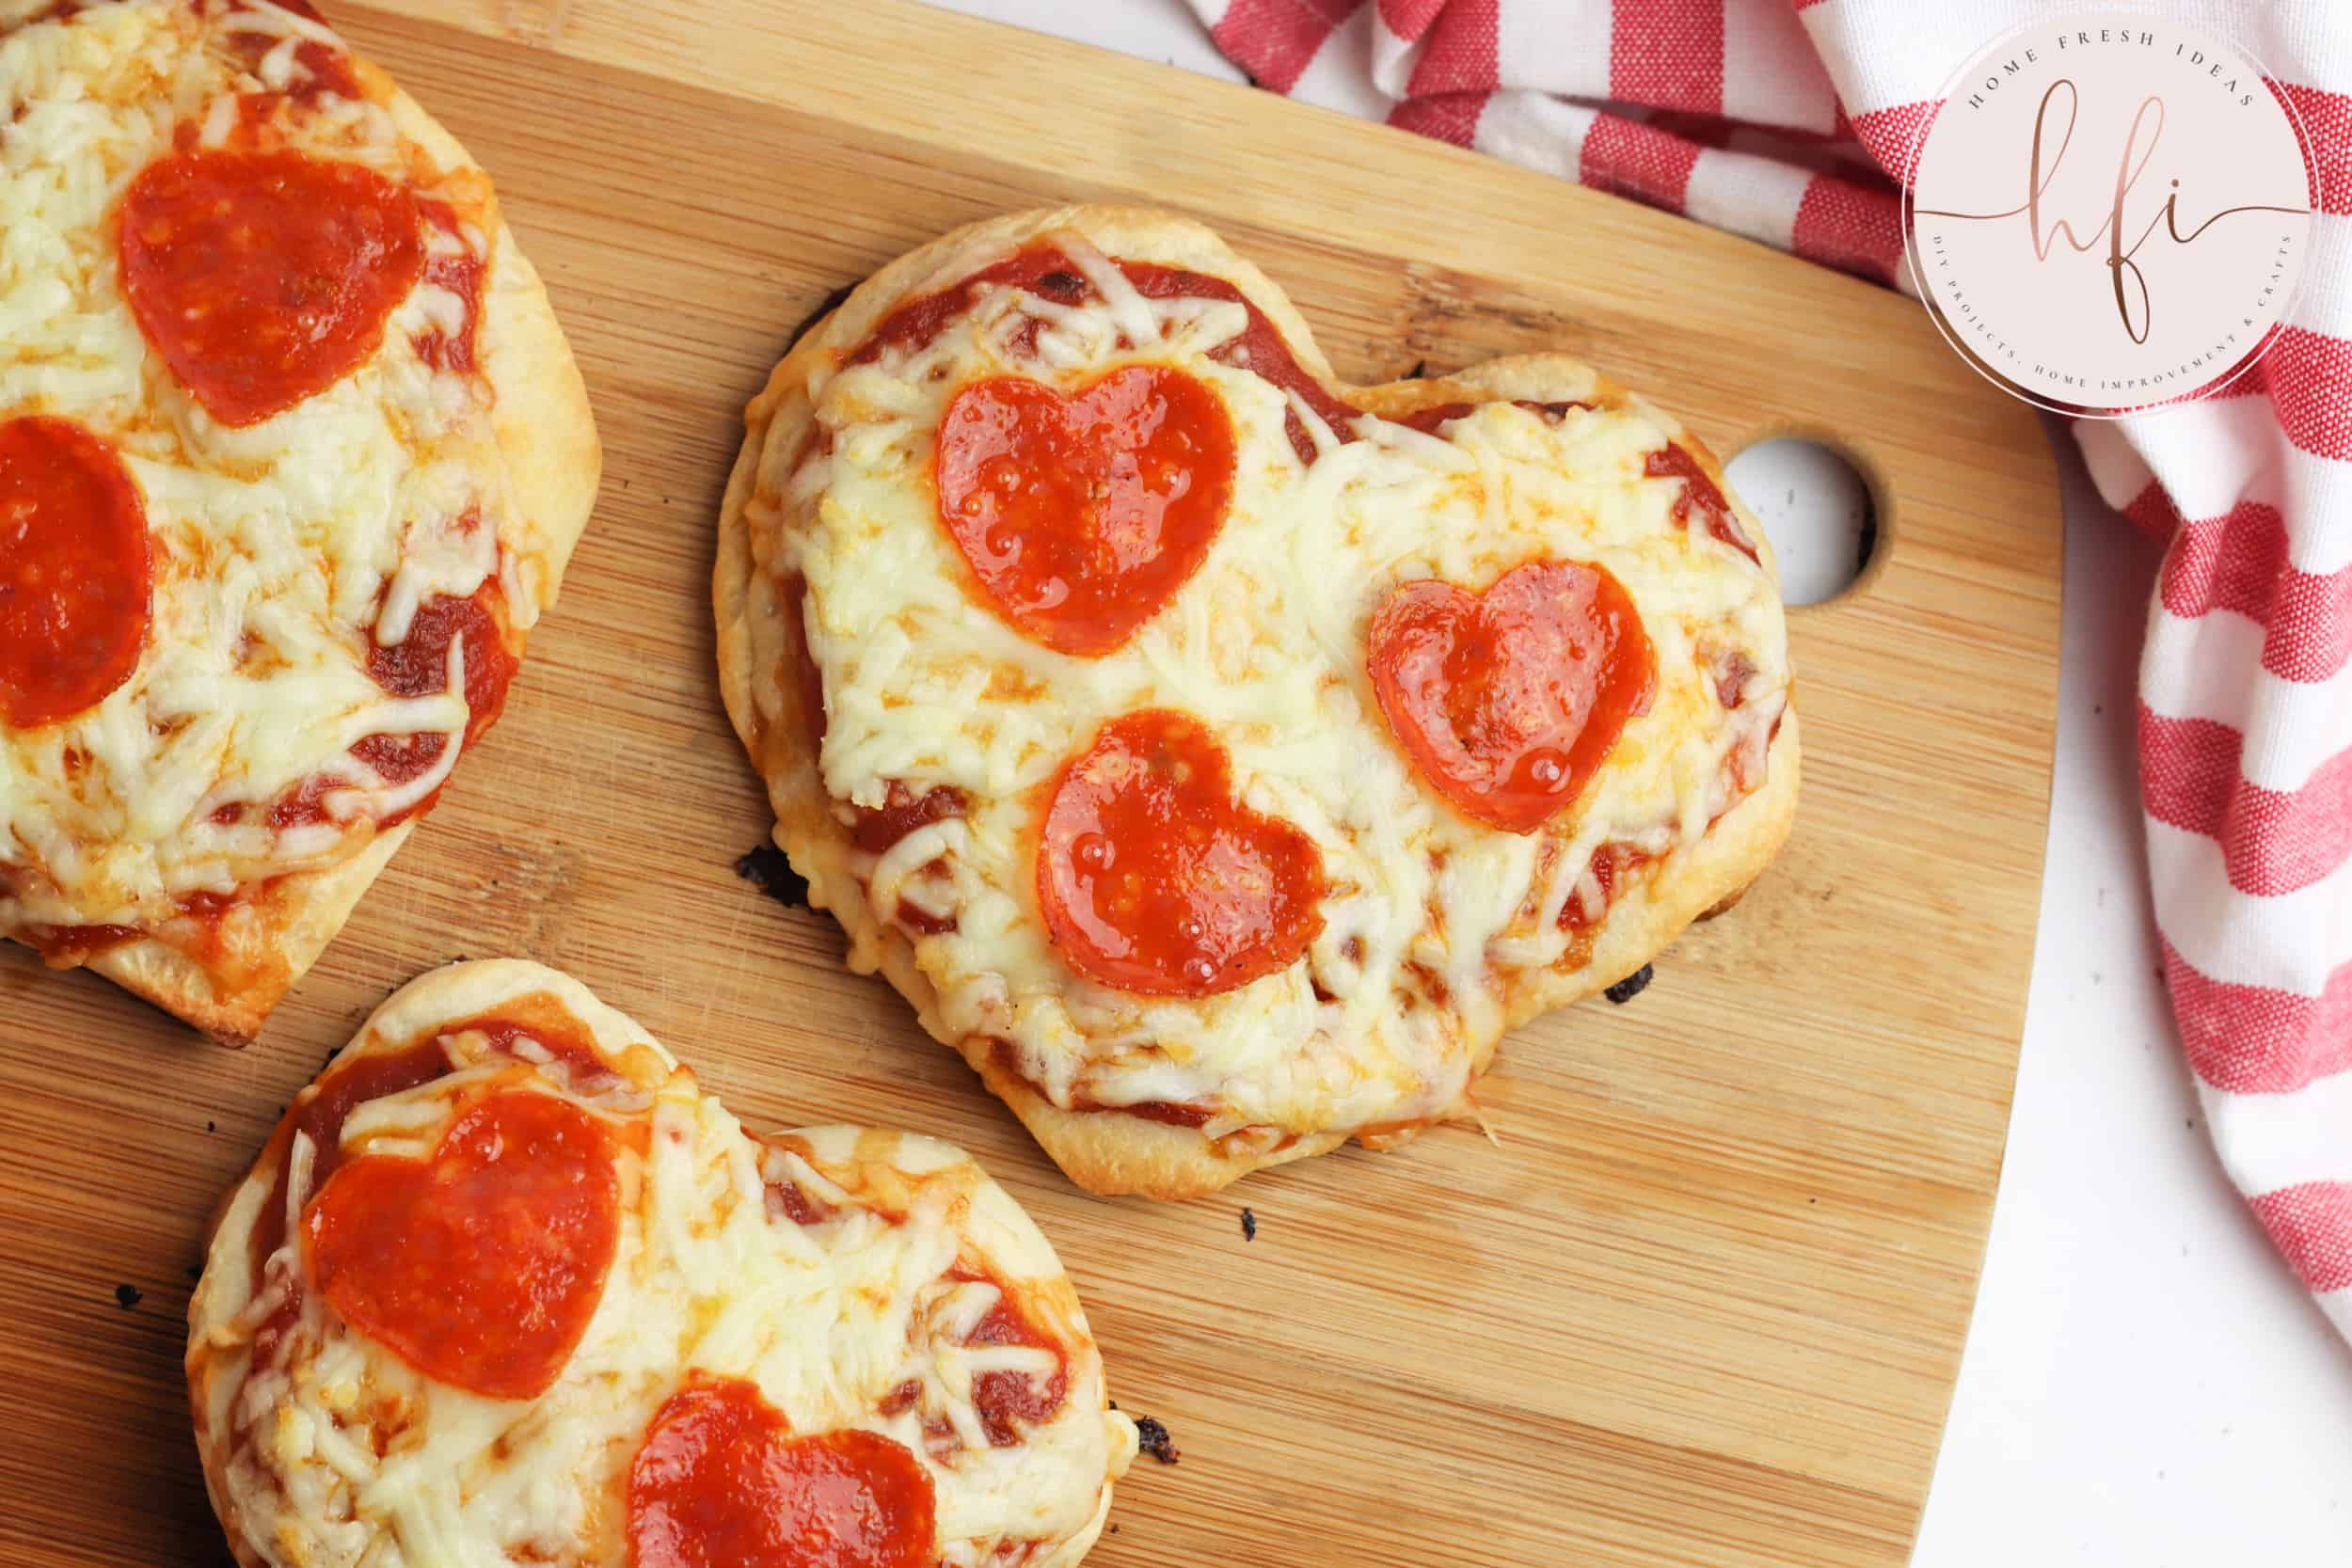 baked pizzas ready to eat